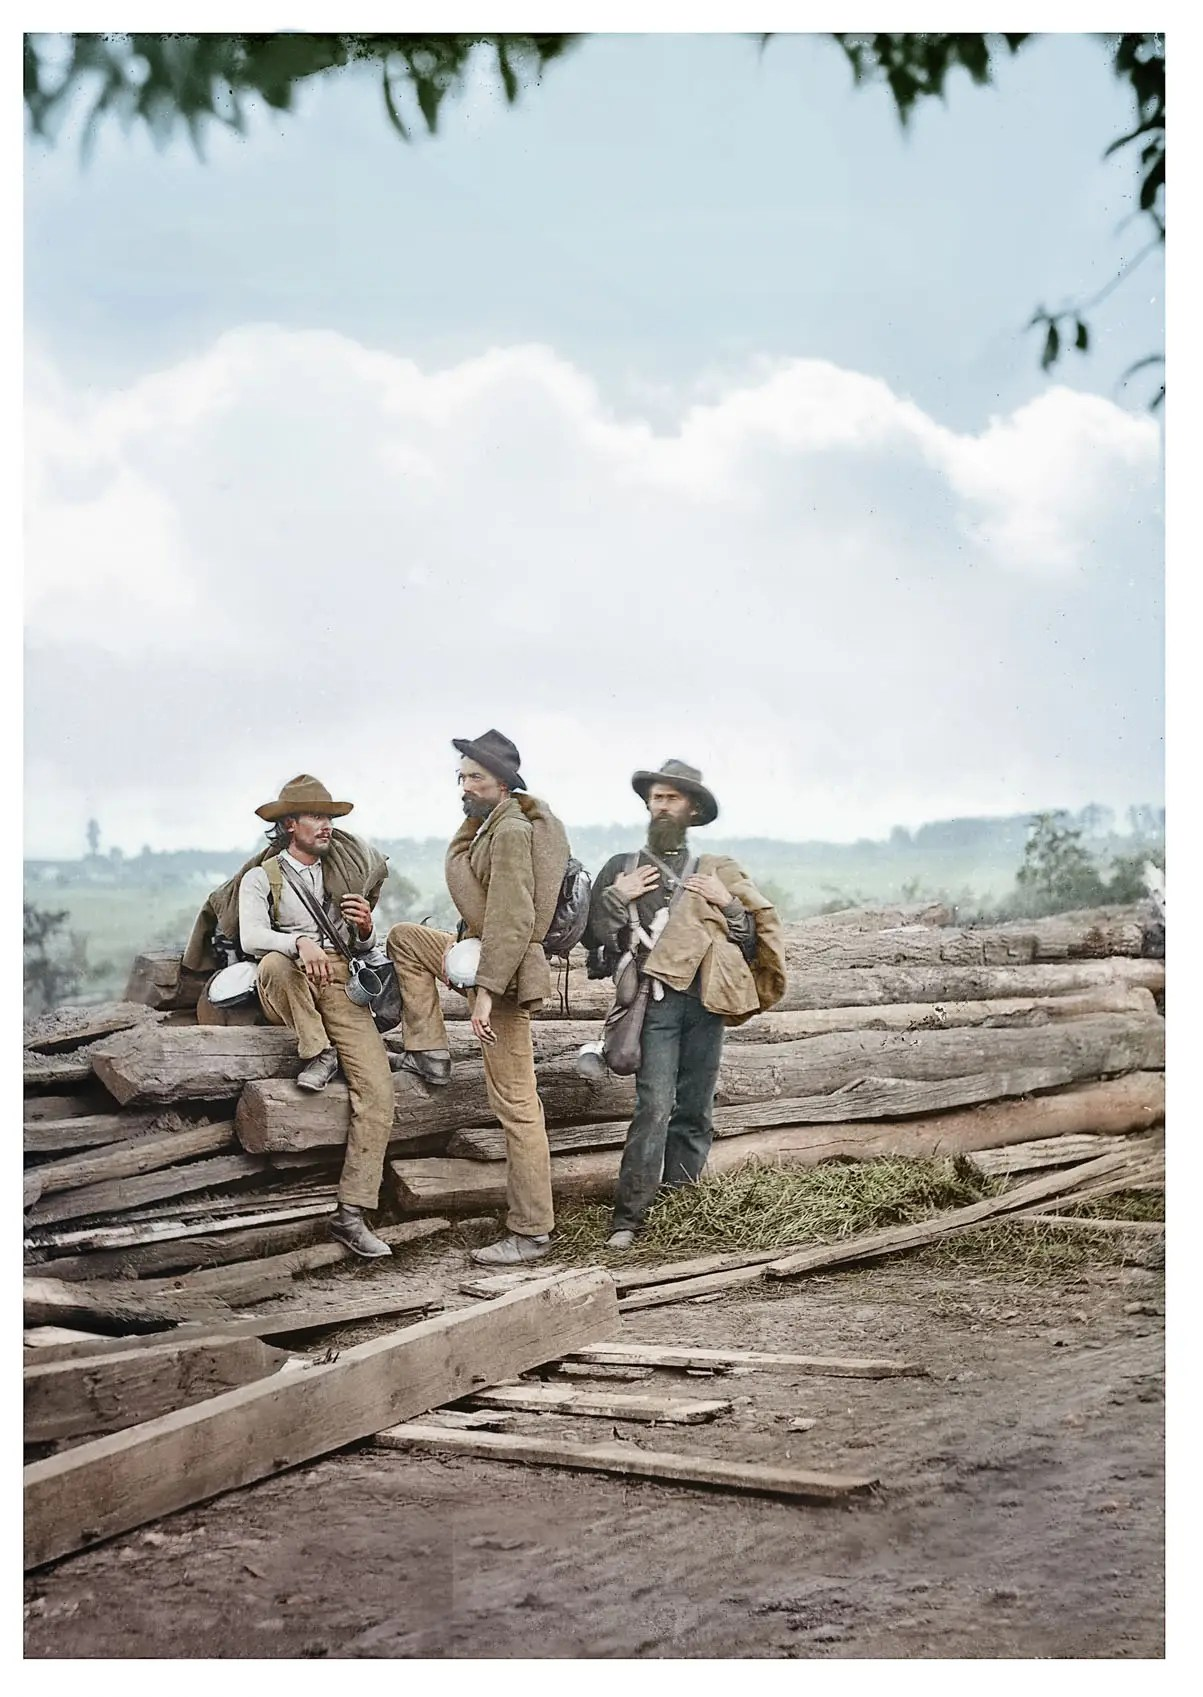 Colorized American Civil War Photos From Reddit